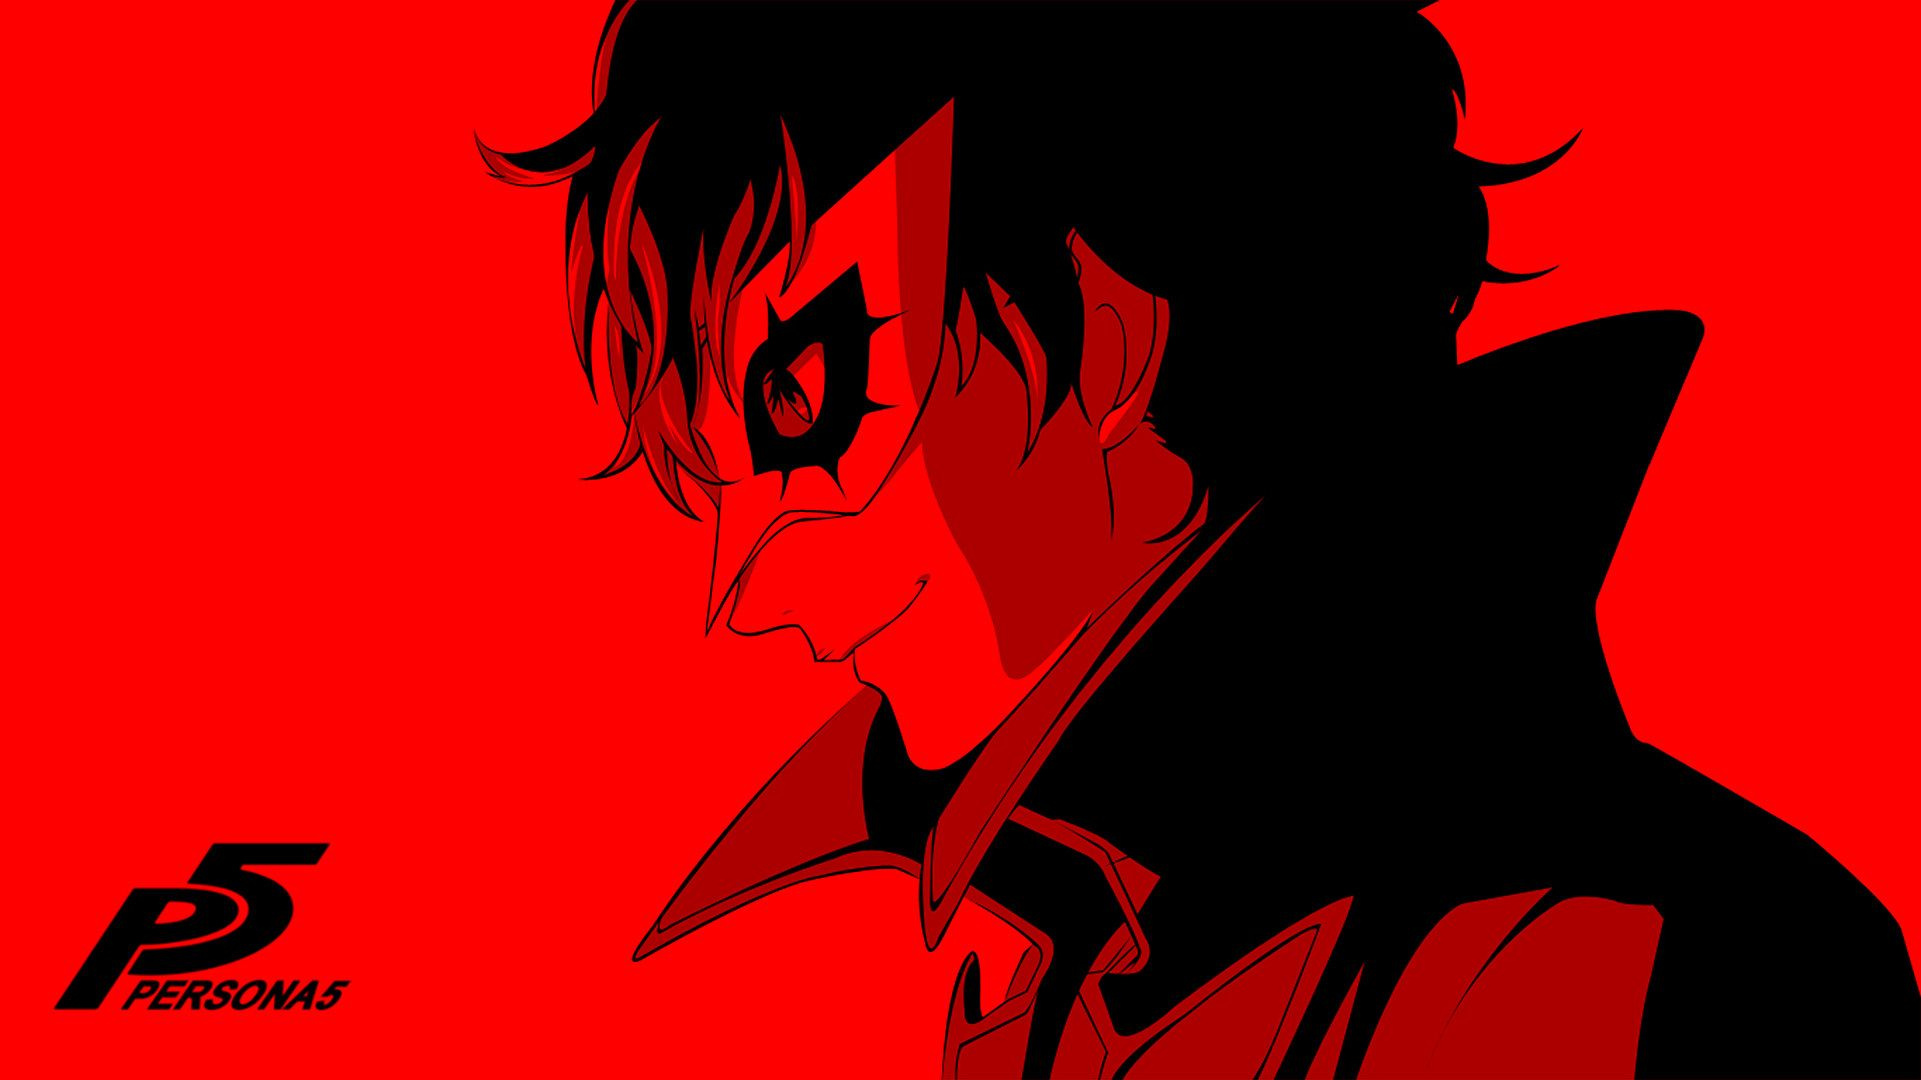 persona 5 take your heart wallpaper